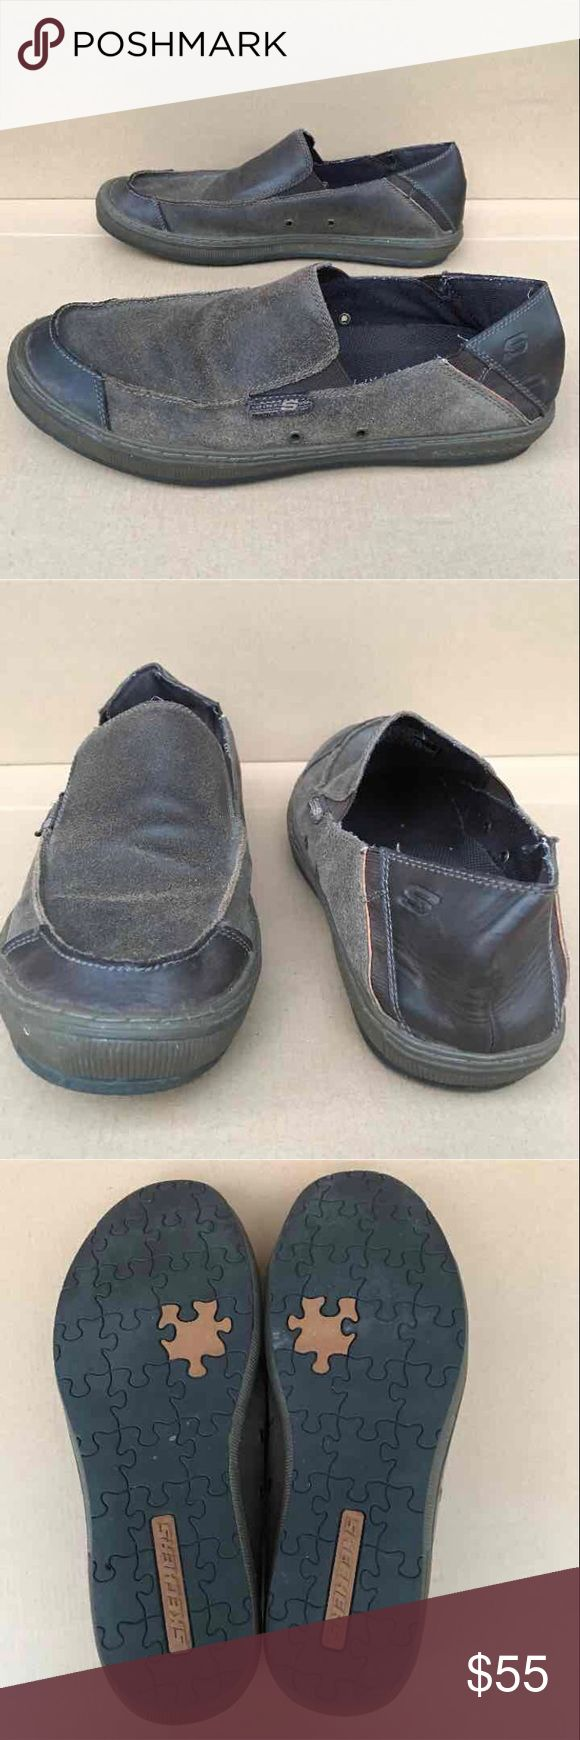 Skechers Men's Shoes Size 11 Skechers Men's Shoes in good used condition. Size 11. Show signs of usage. No rips or tears, no holes, no scuffing of the black rubber outsole. Brown color leather upper. No box and accessories. Skechers Shoes Loafers & Slip-Ons